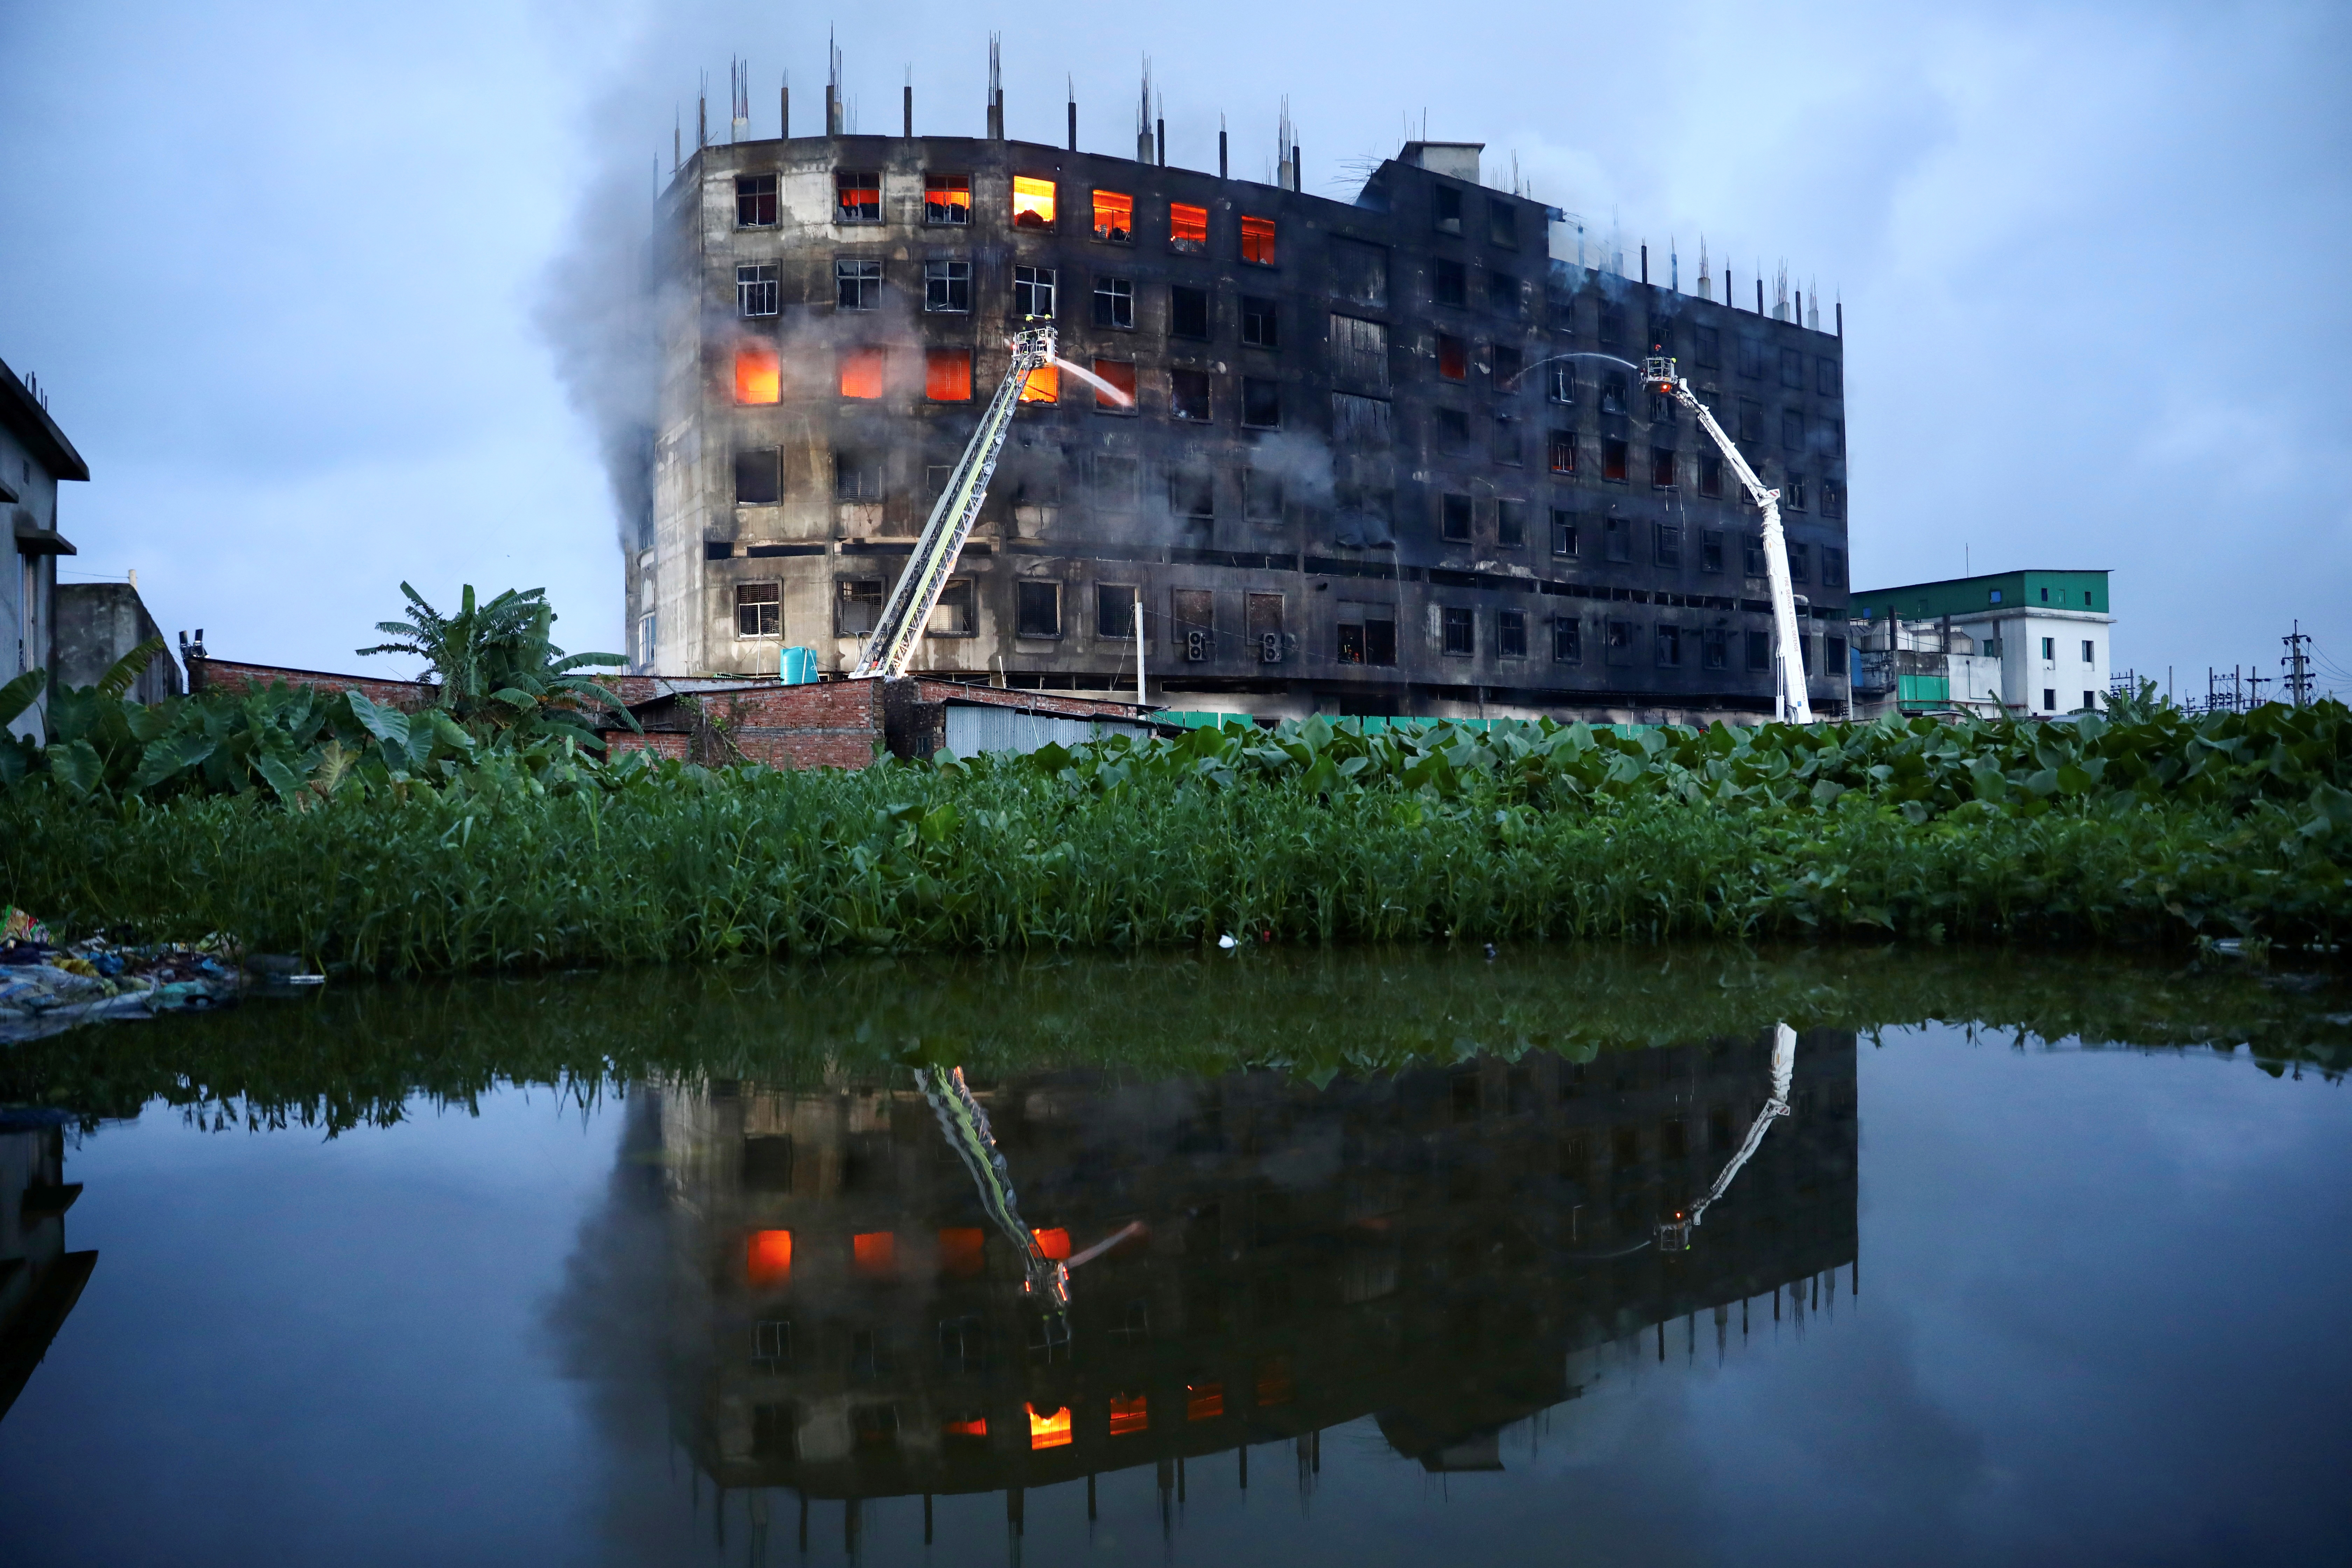 Flames rise the morning after a fire broke out at a factory named Hashem Foods Ltd. in Rupganj of Narayanganj district, on the outskirts of Dhaka, Bangladesh, July 9, 2021. REUTERS/Mohammad Ponir Hossain